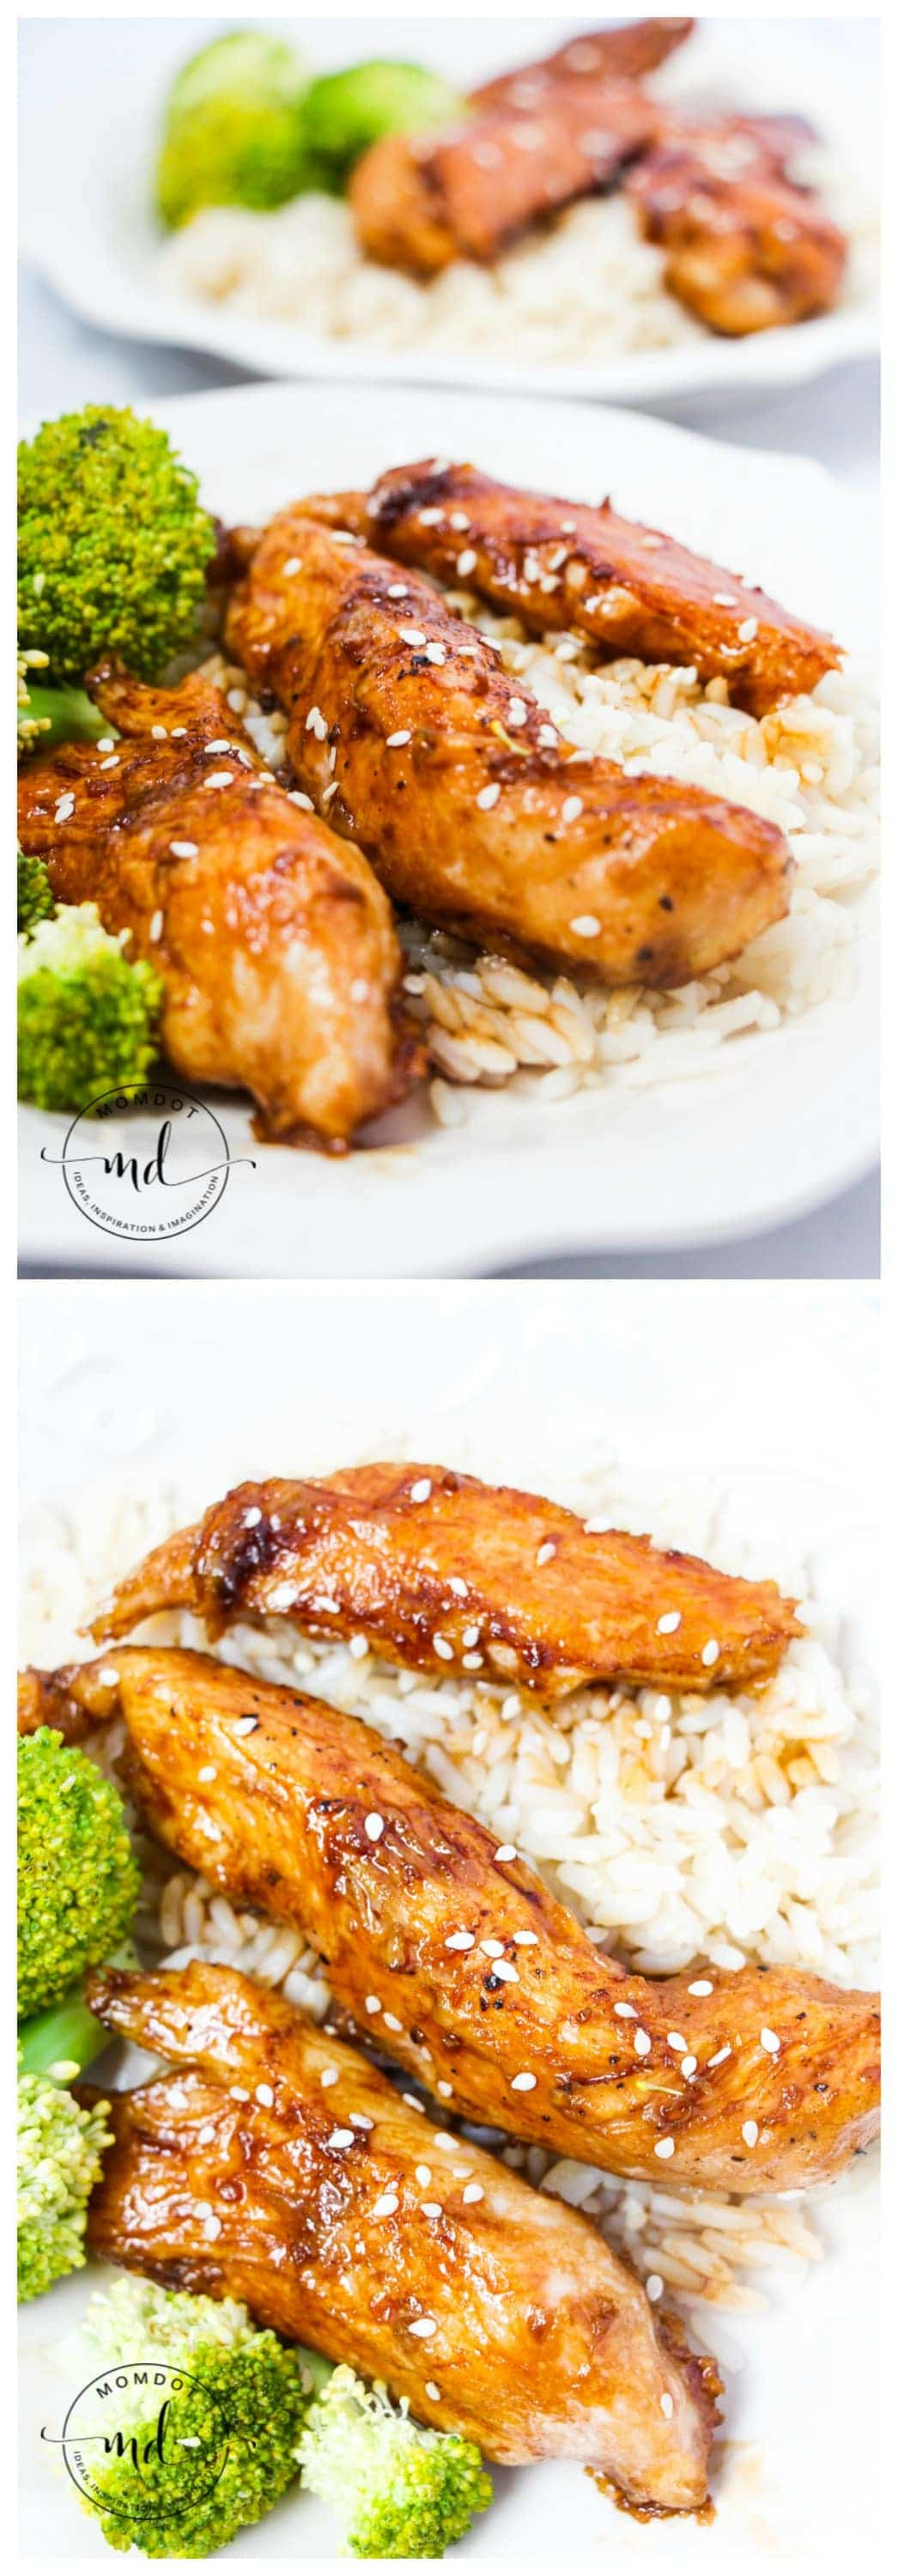 Easy Stir Fry Teriyaki Chicken Fingers Recipe | 15 min Teriyaki Chicken Dinner |